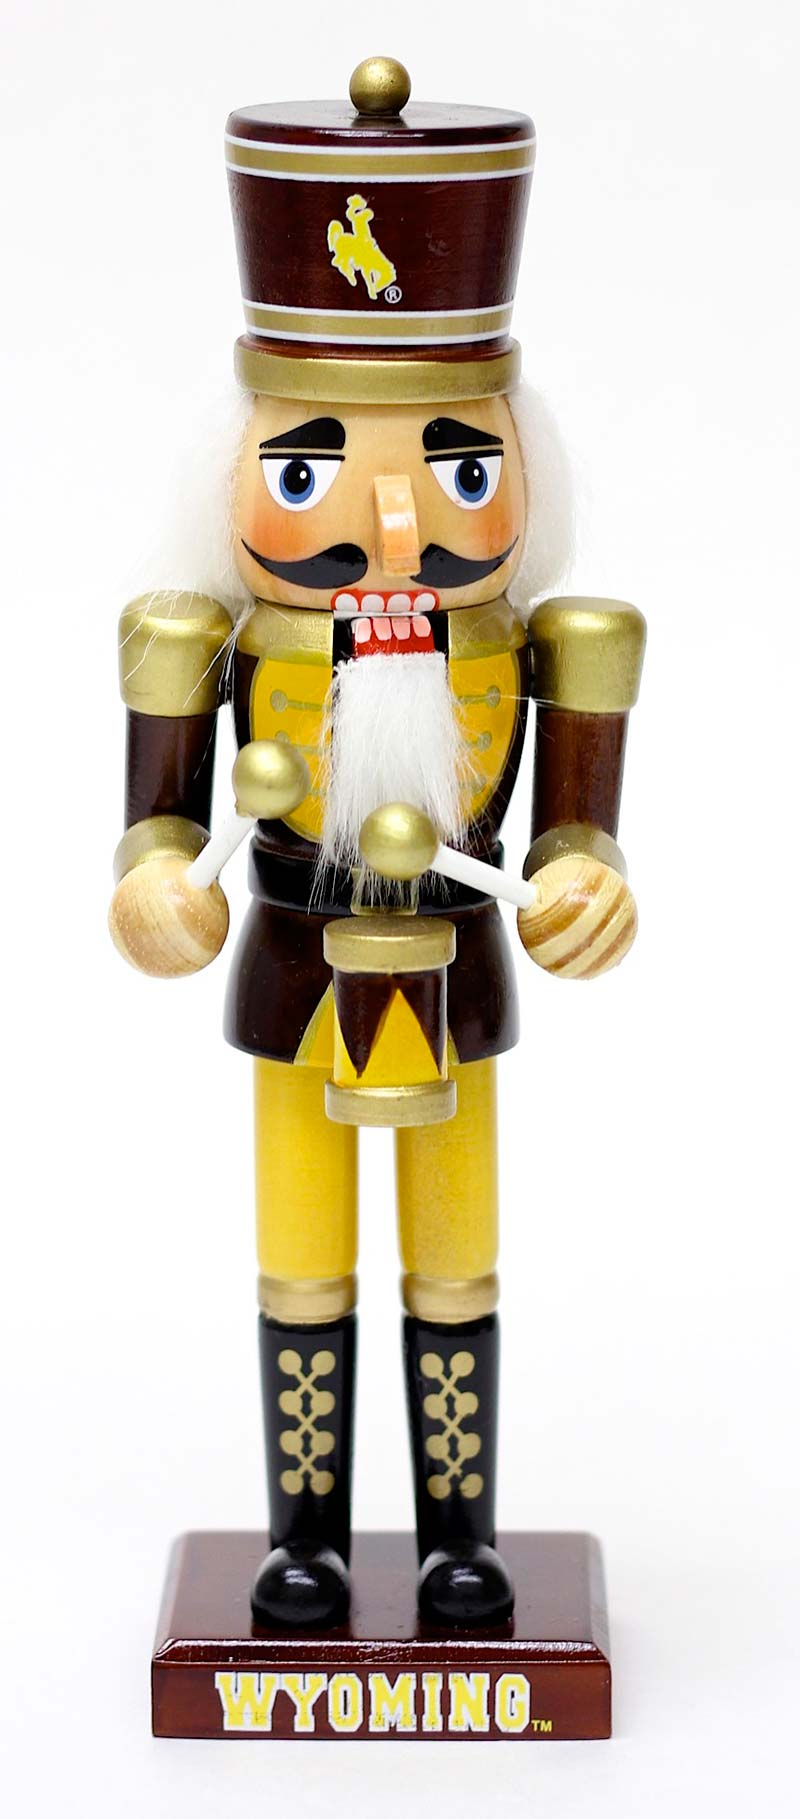 Spirit Products® Wooden Drummer Wyoming Nutcracker